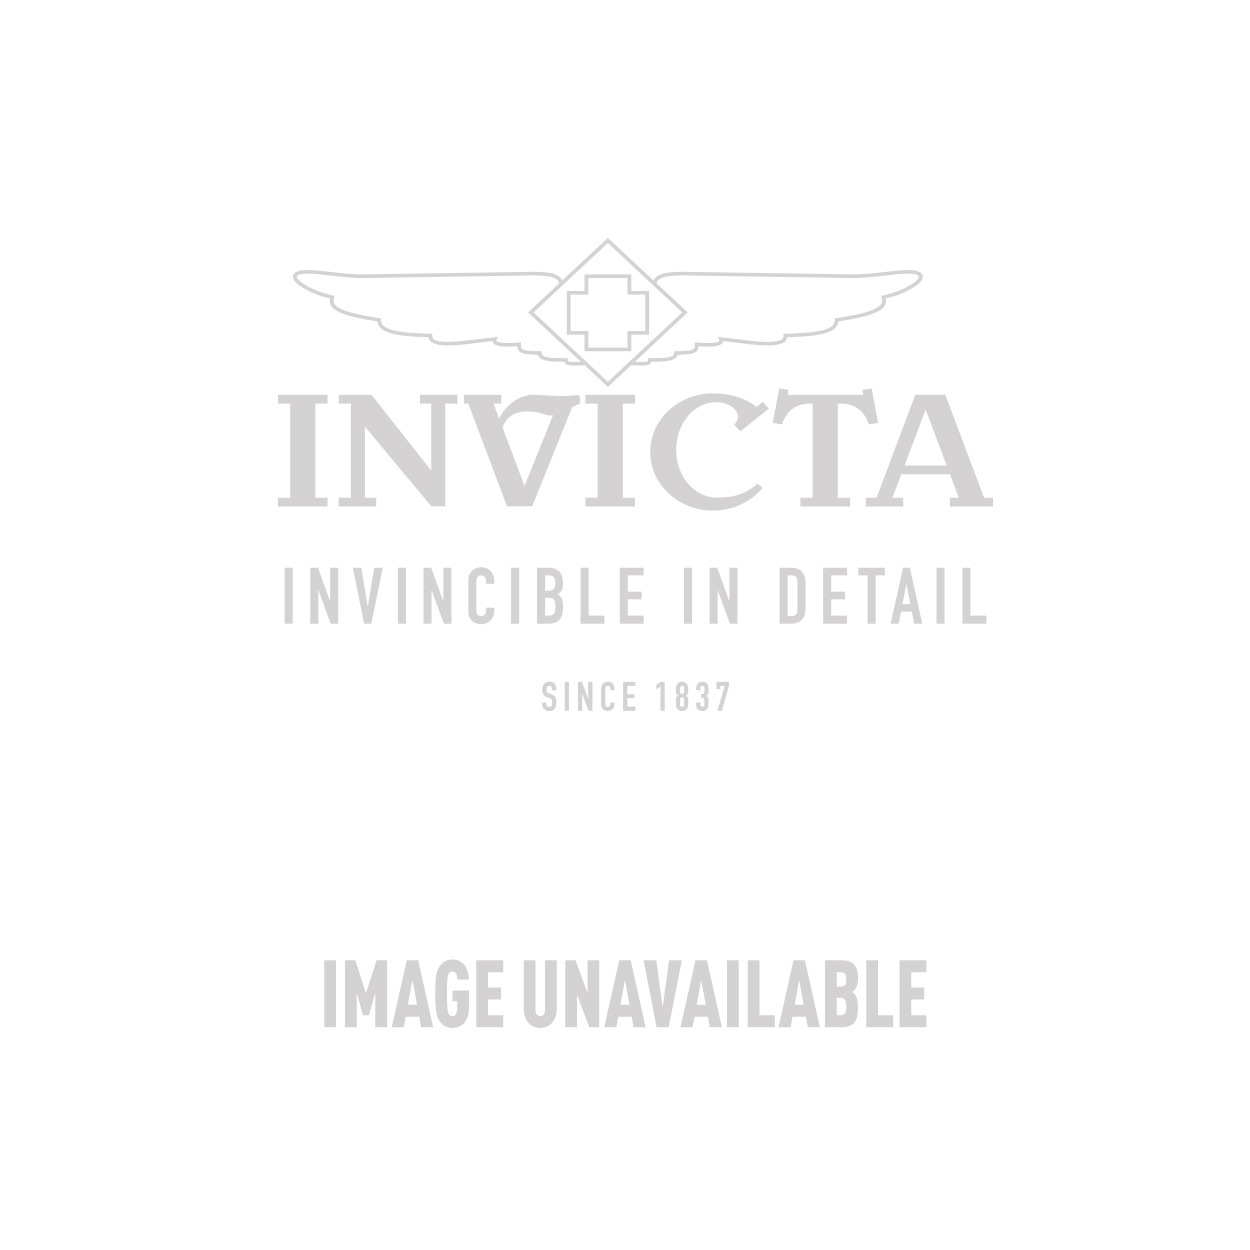 Invicta Angel Swiss Movement Quartz Watch - Gold case with Gold tone Stainless Steel band - Model 16891